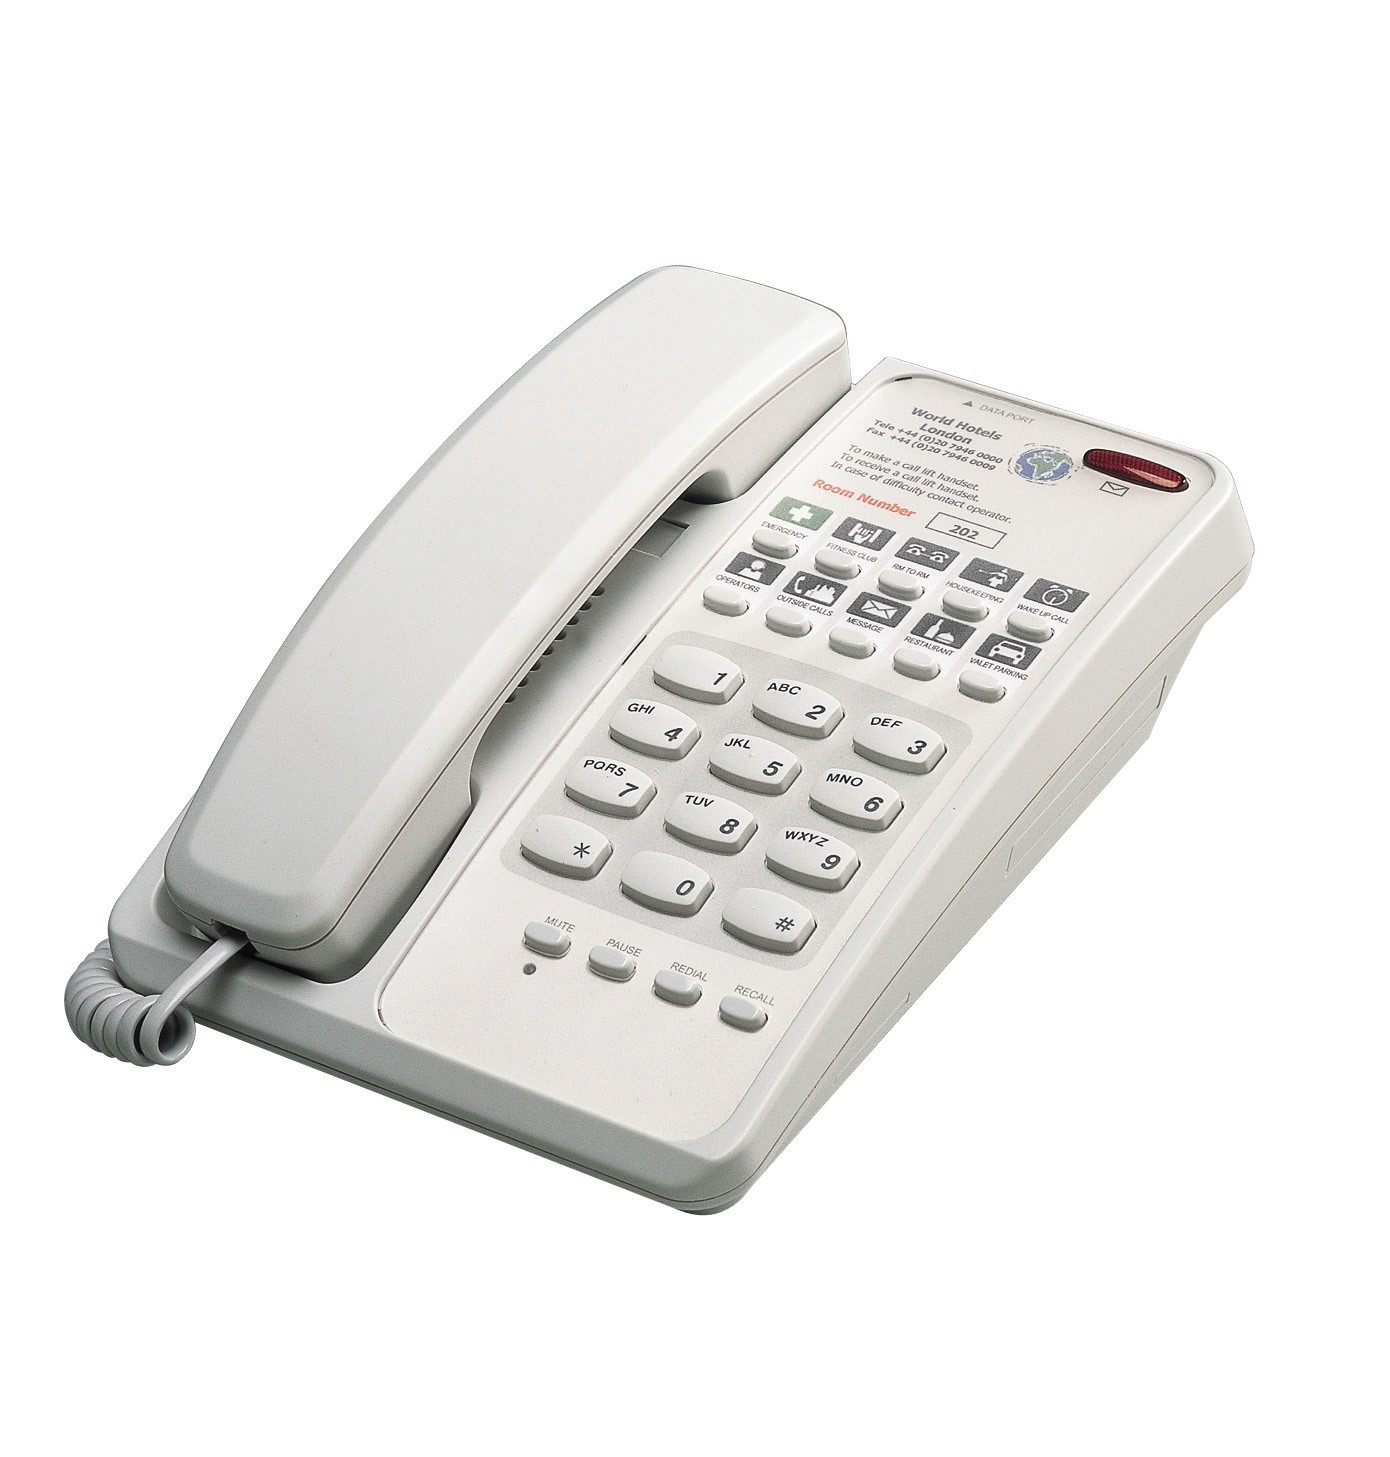 Interquartz Voyager Standard 9281 Business Phone - Light Grey